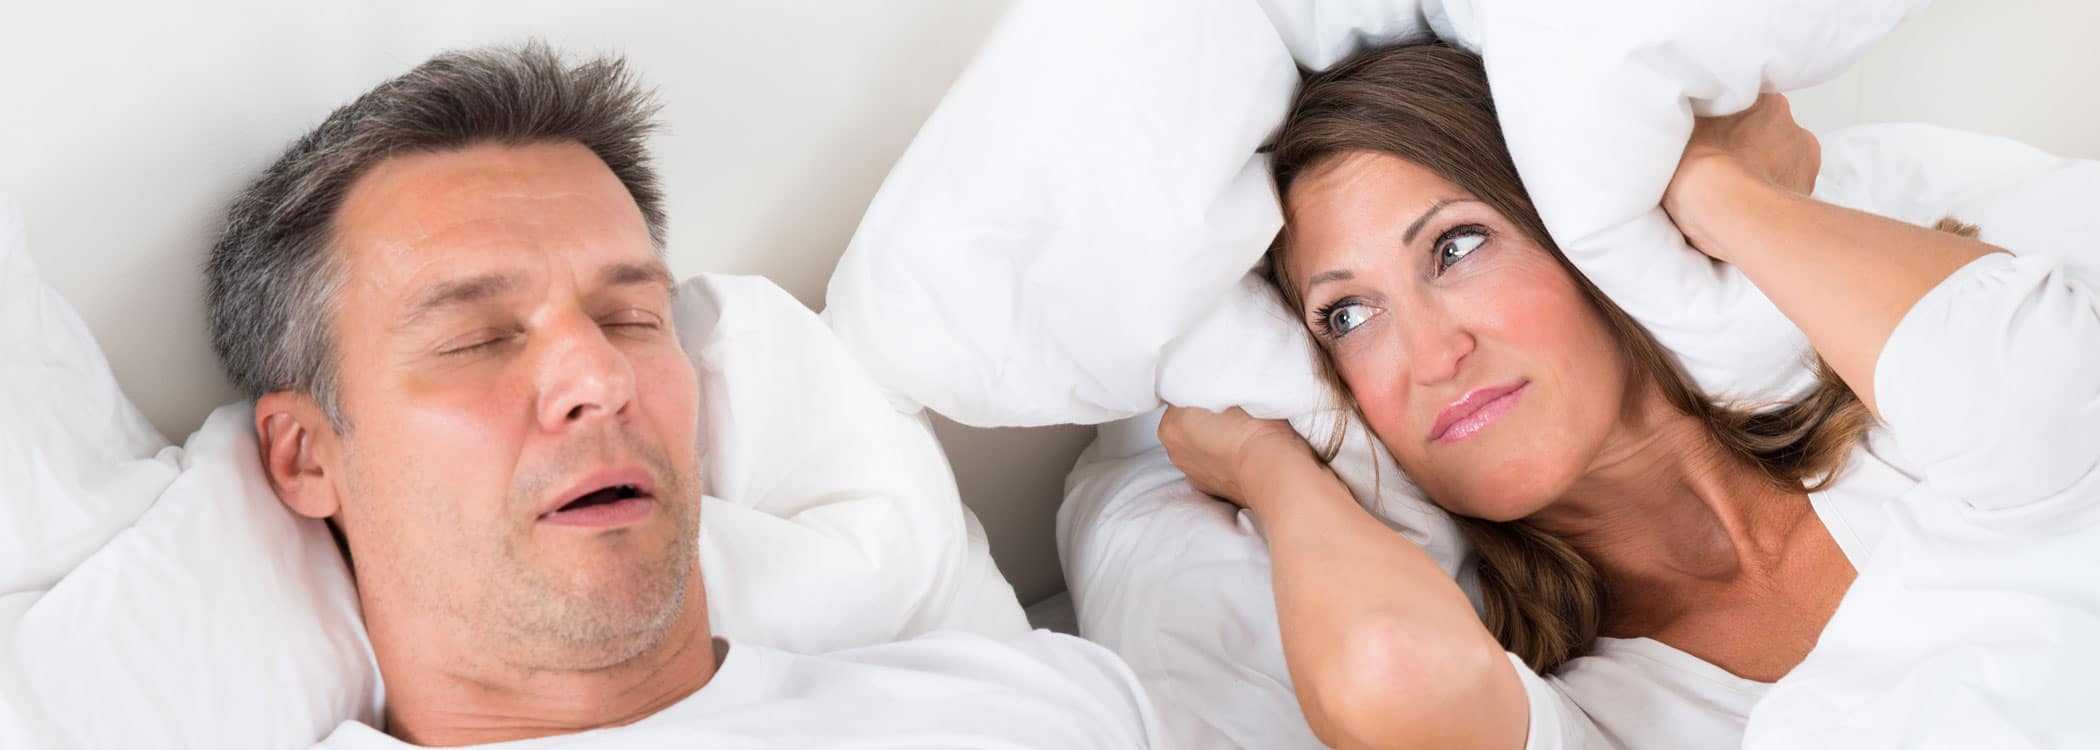 Snoring - woman holding pillows over her ears as male snores.